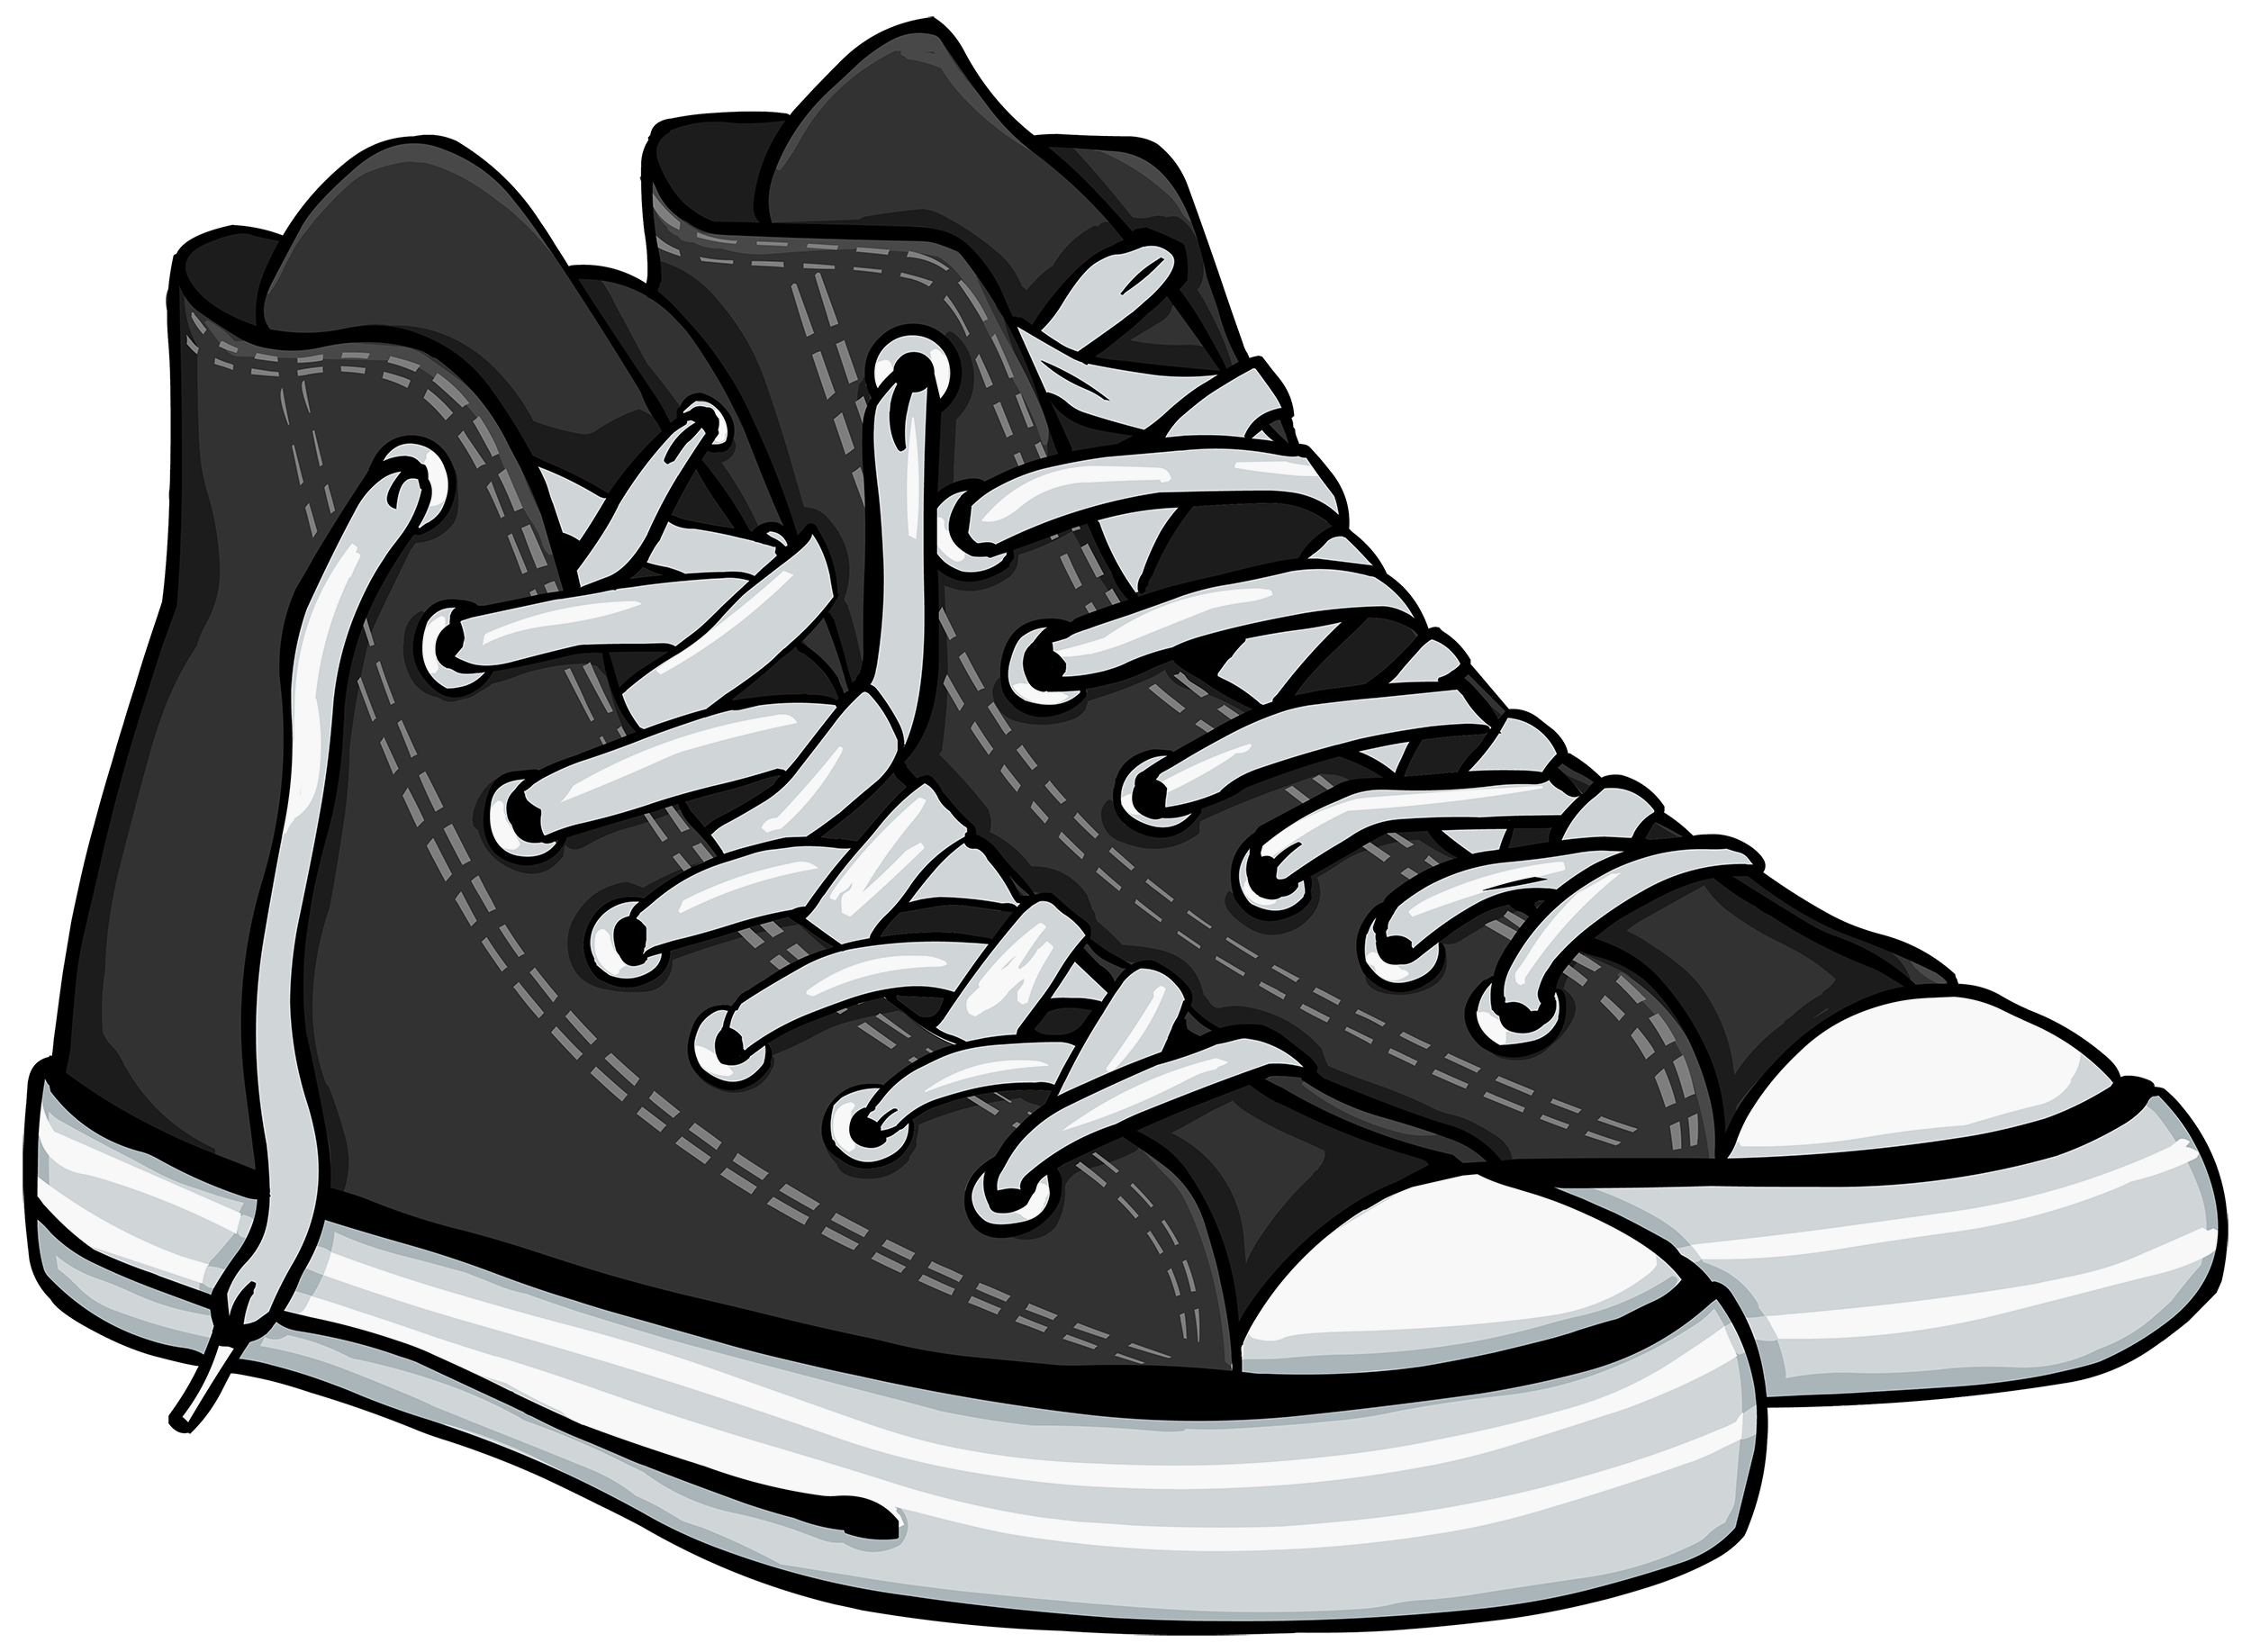 png transparent Tennis shoes clipart black and white. Collection images pinterest